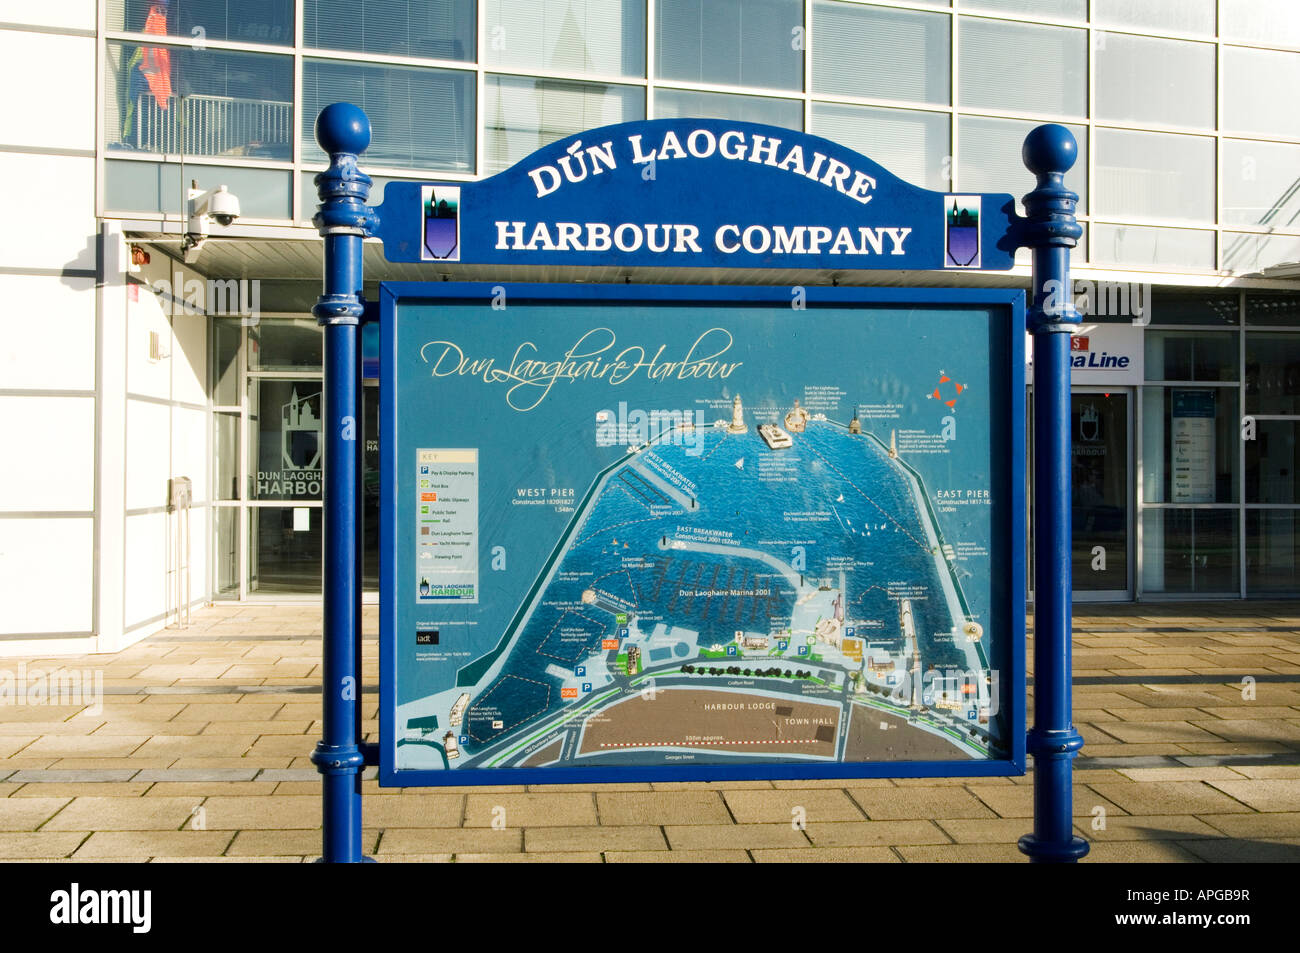 Map Of Ireland Near Dublin.A Notice Board At Dun Laoghaire Harbour Near Dublin Ireland With A